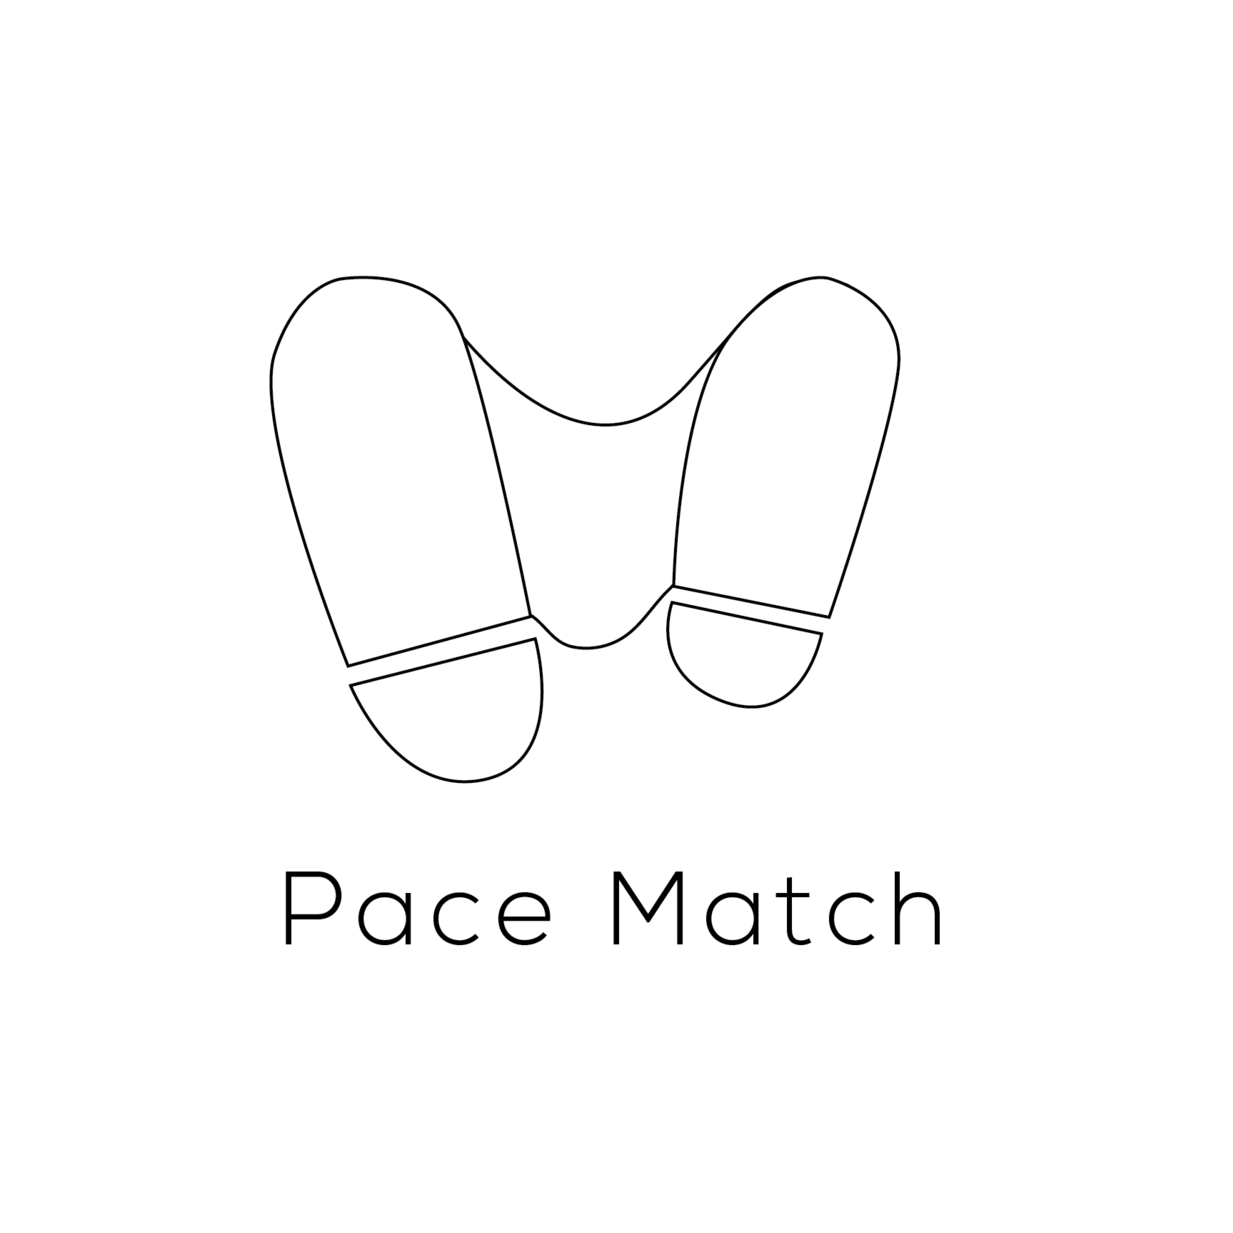 pace match sketch to logo.png